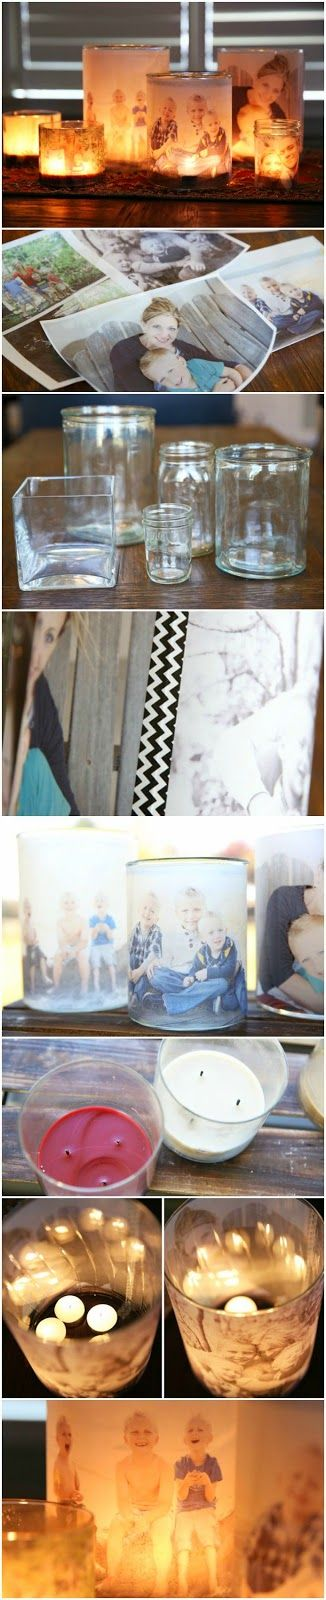 Best DIY Projects: Glowing Photo Luminaries – From Our Best Bites